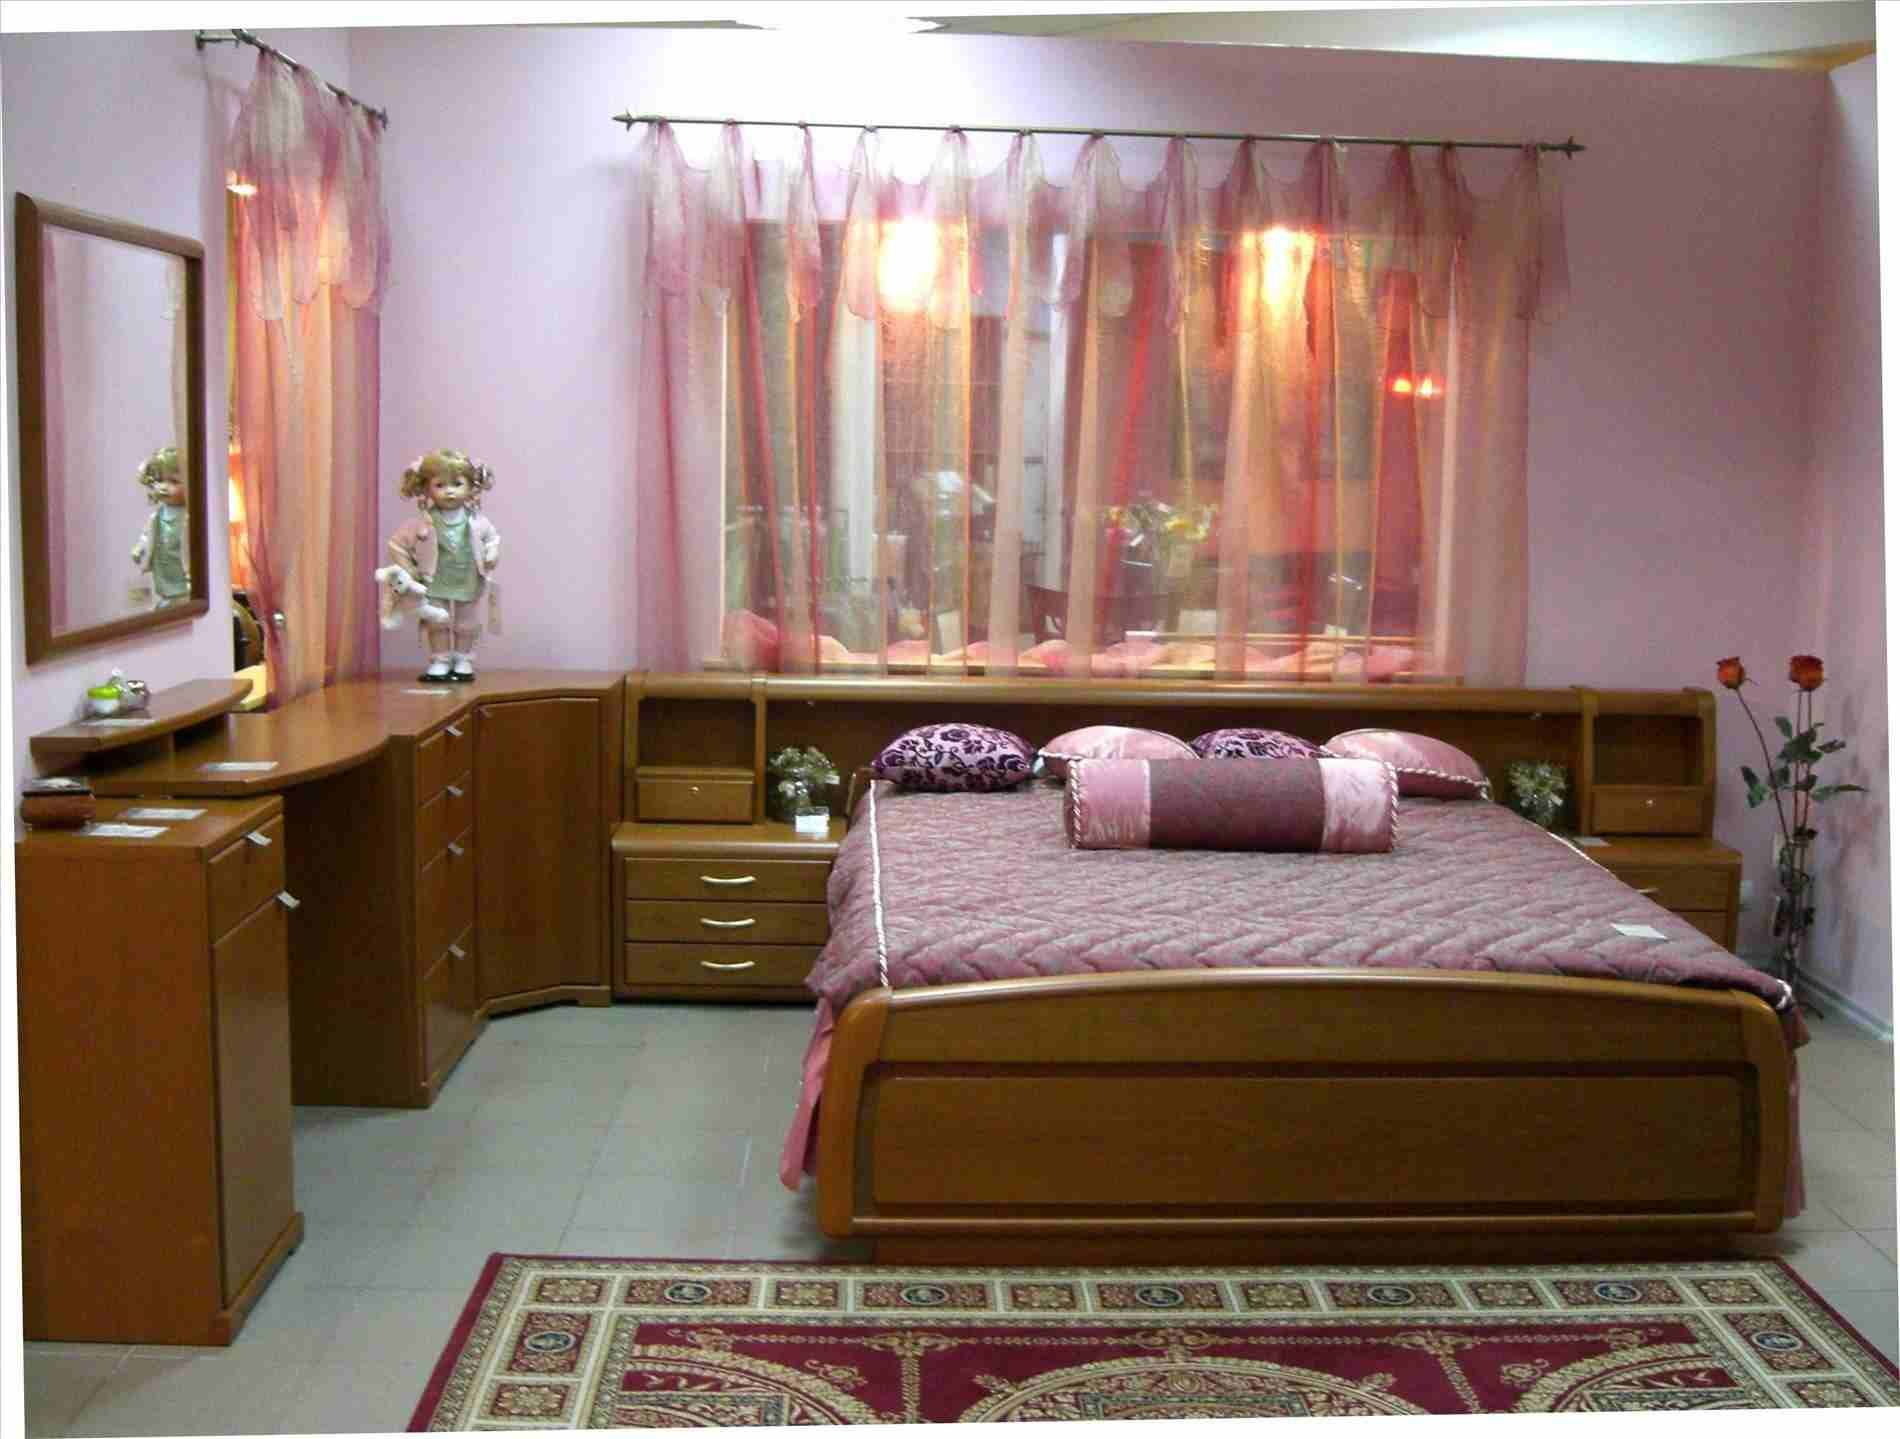 Bedroom Designs In Kerala Simple Bedroom Design Indian Bedroom